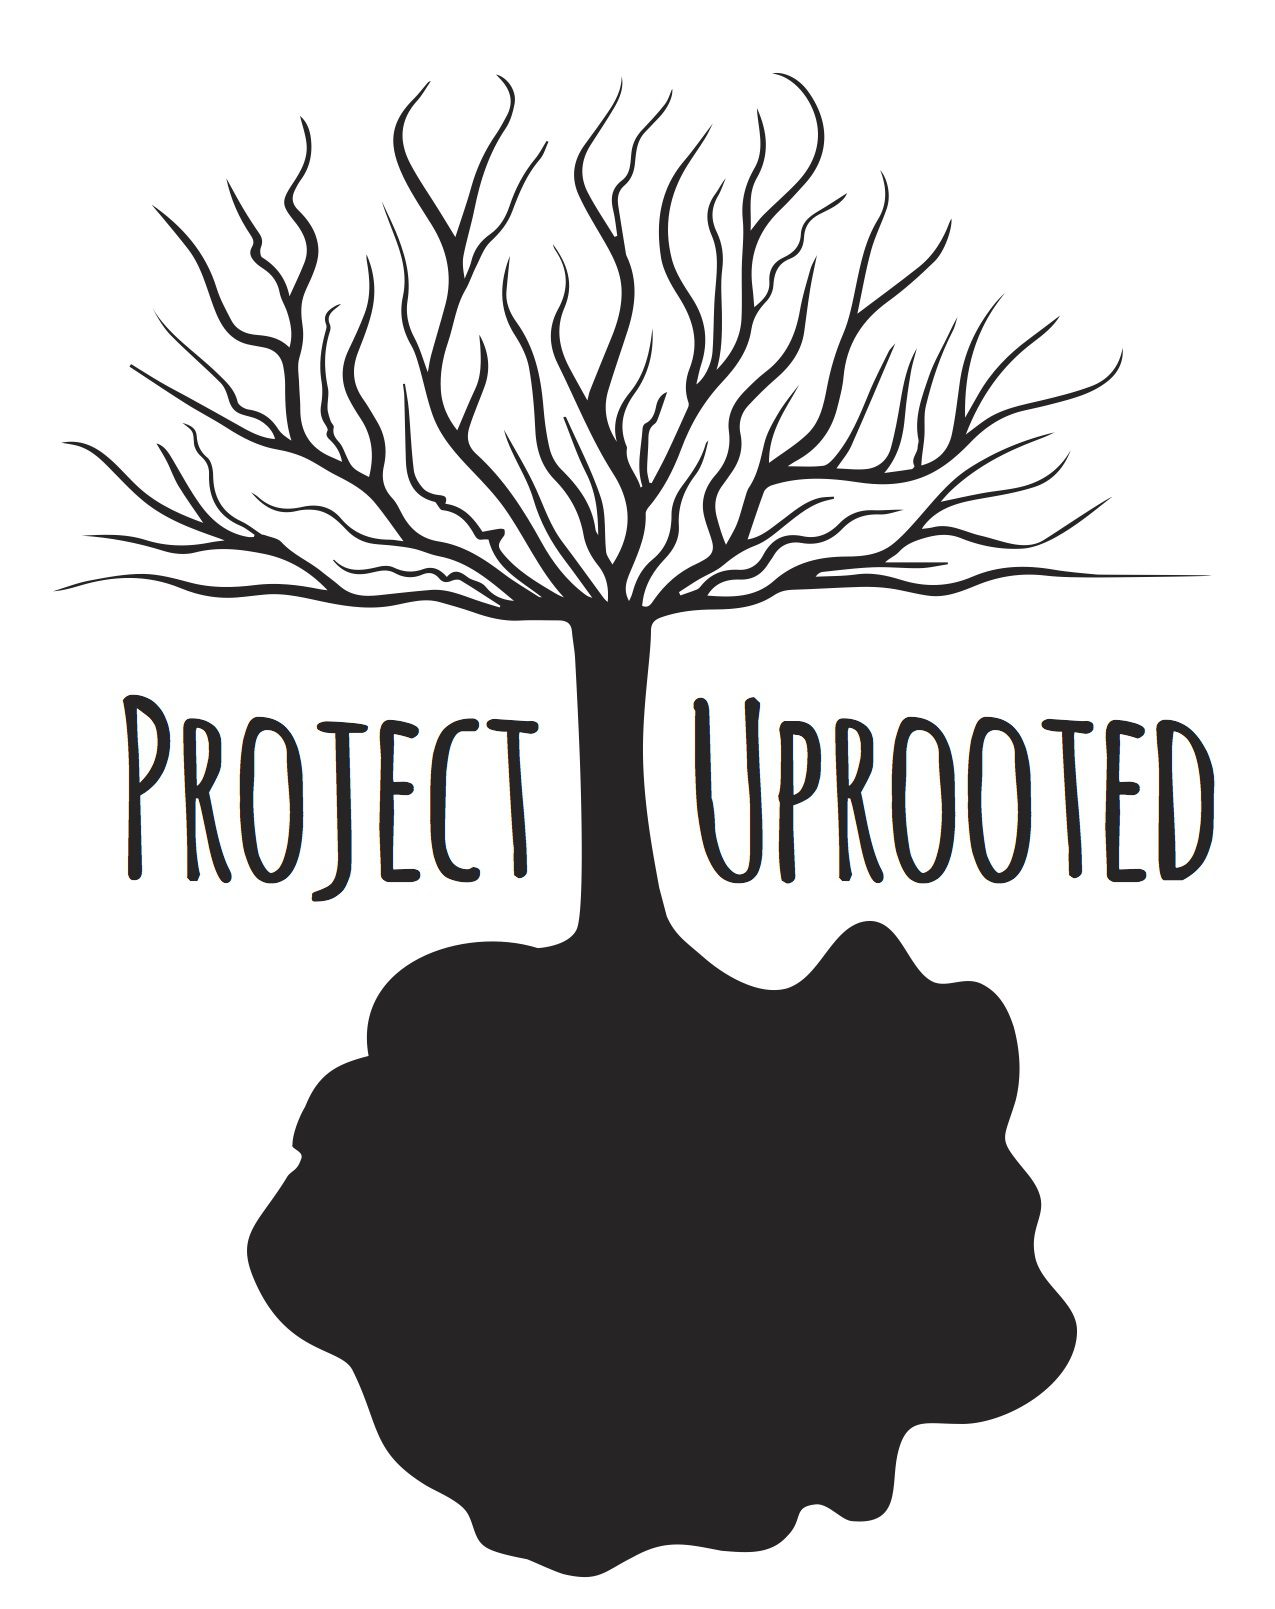 Project Uprooted